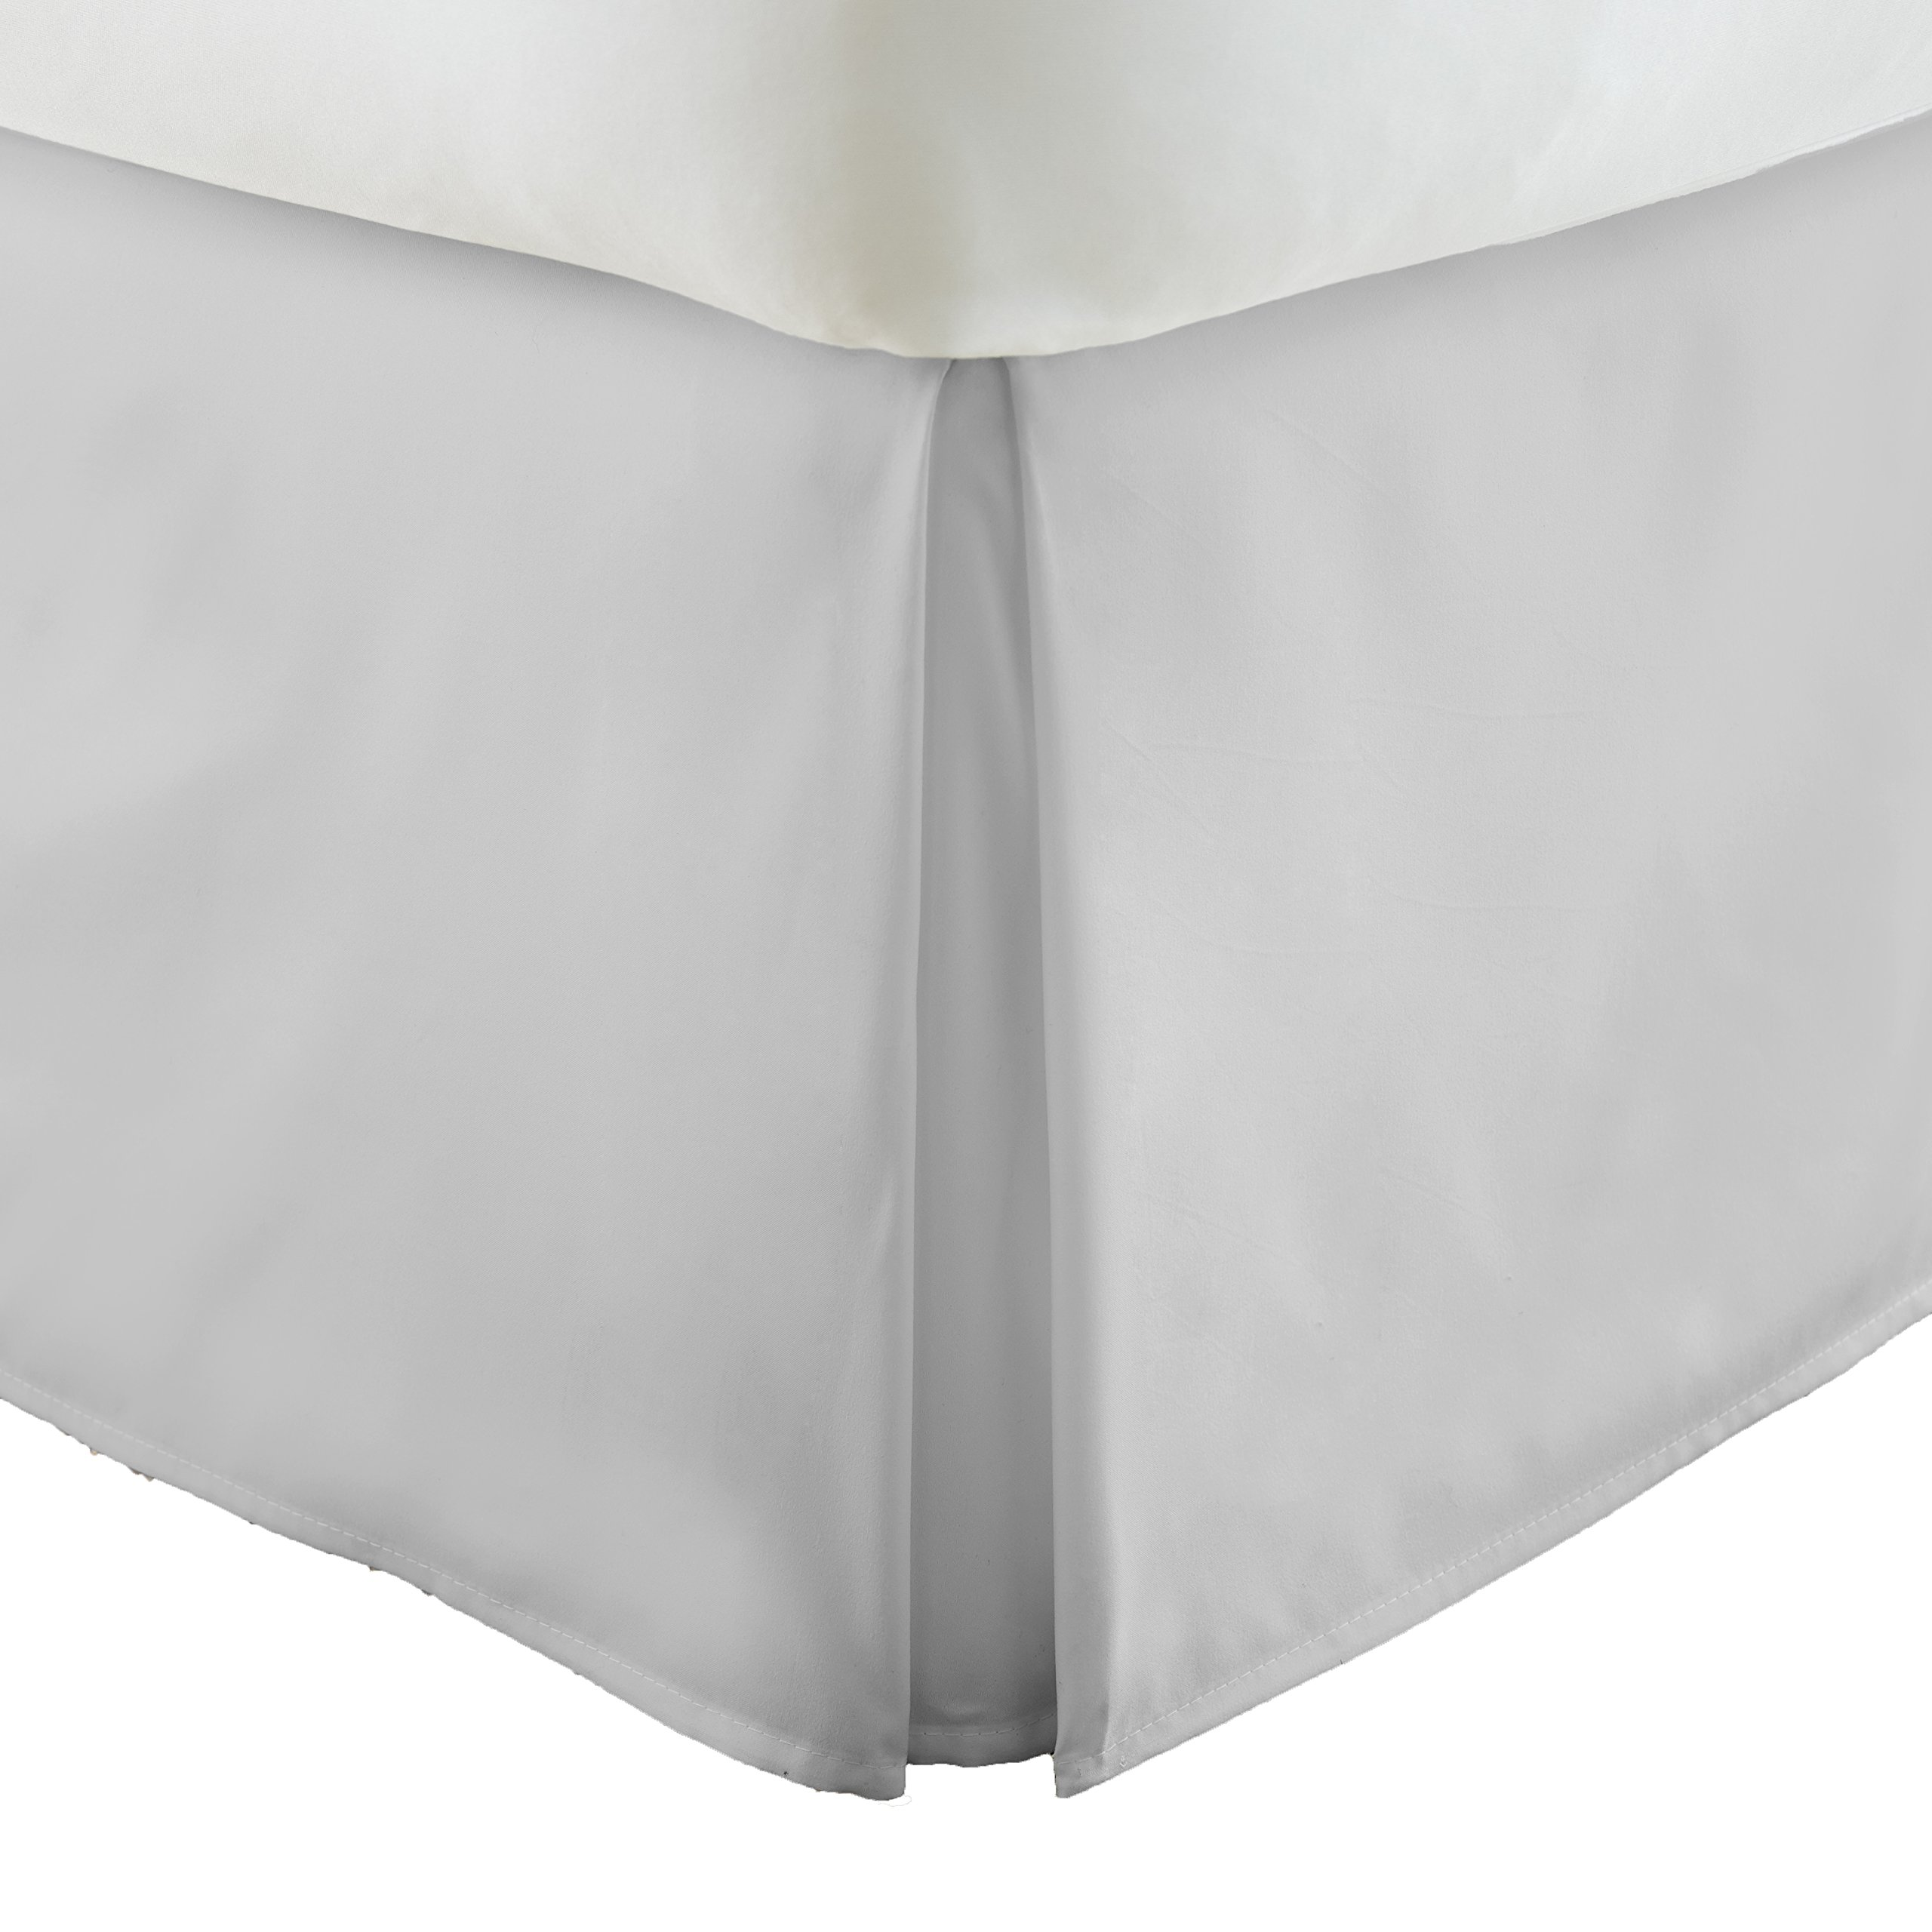 ienjoy Home Ieh-Bedskirt Pleated Bed Skirt, KING, Lgray